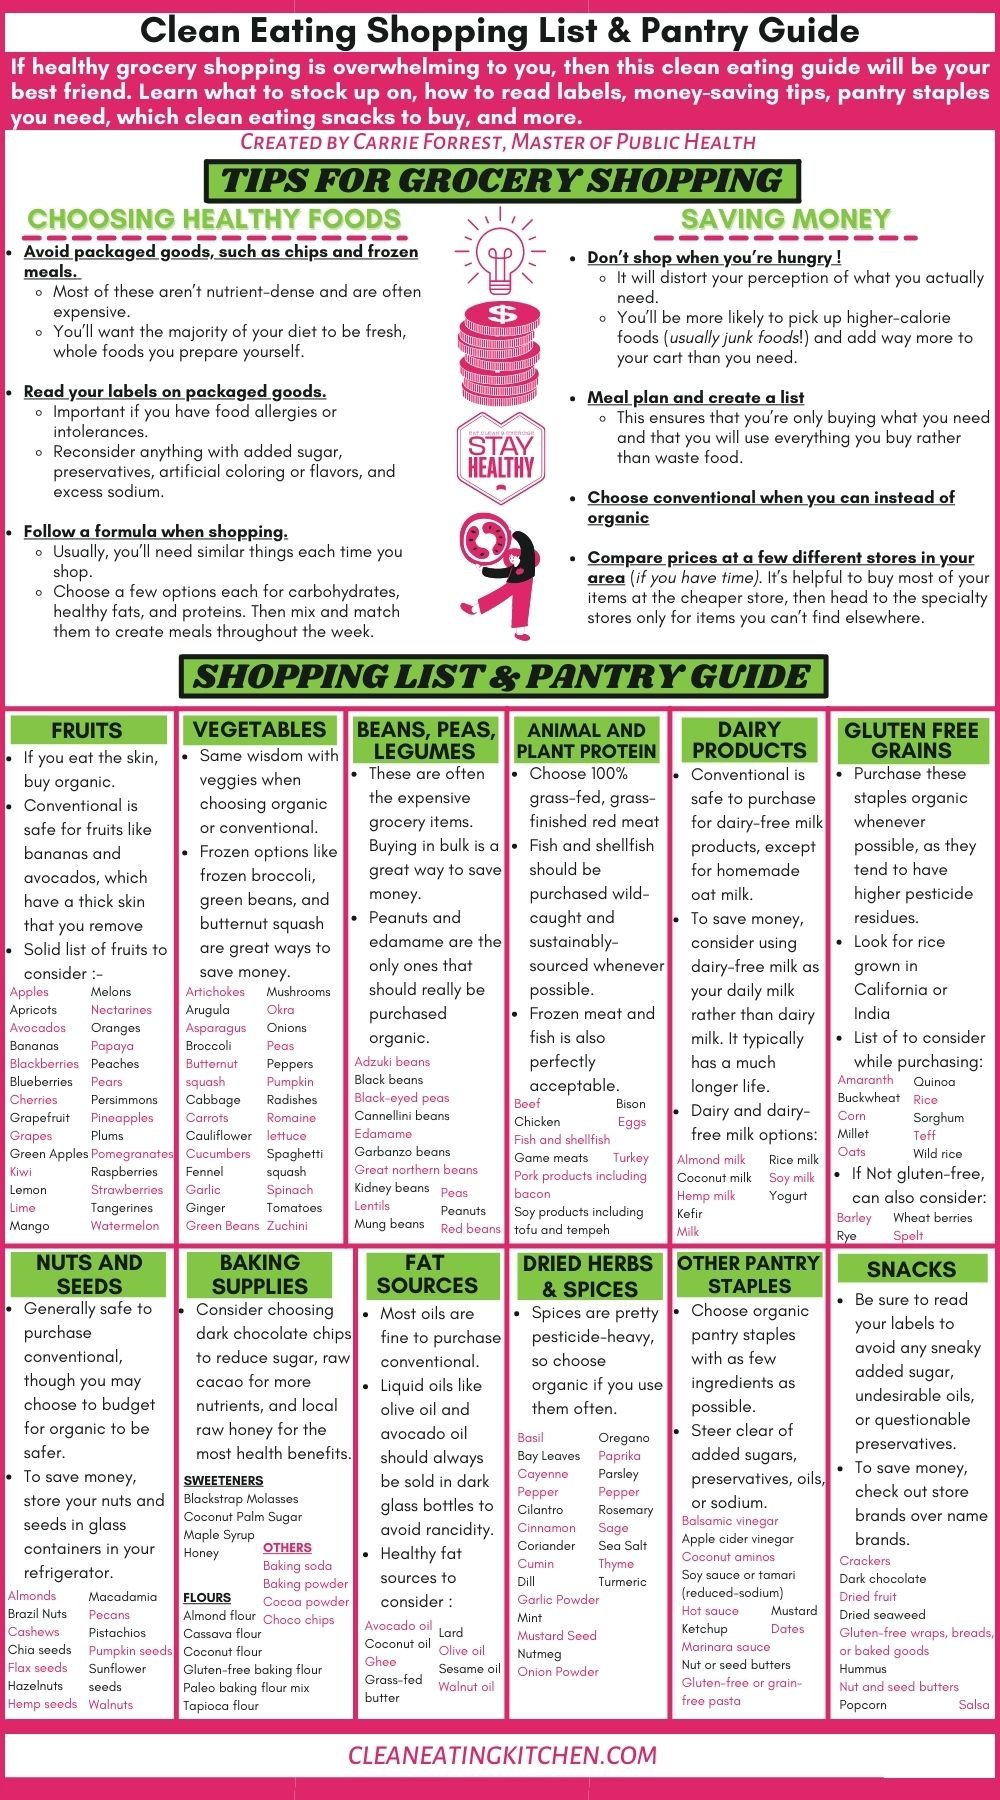 This list of clean eating foods includes everything you need for your healthy shopping list. Find fruits, veggies, beans, grains, baking supplies, and more in this comprehensive clean eating food list brought to you by Carrie Forrest, master's of public health and creator of Clean Eating Kitchen.